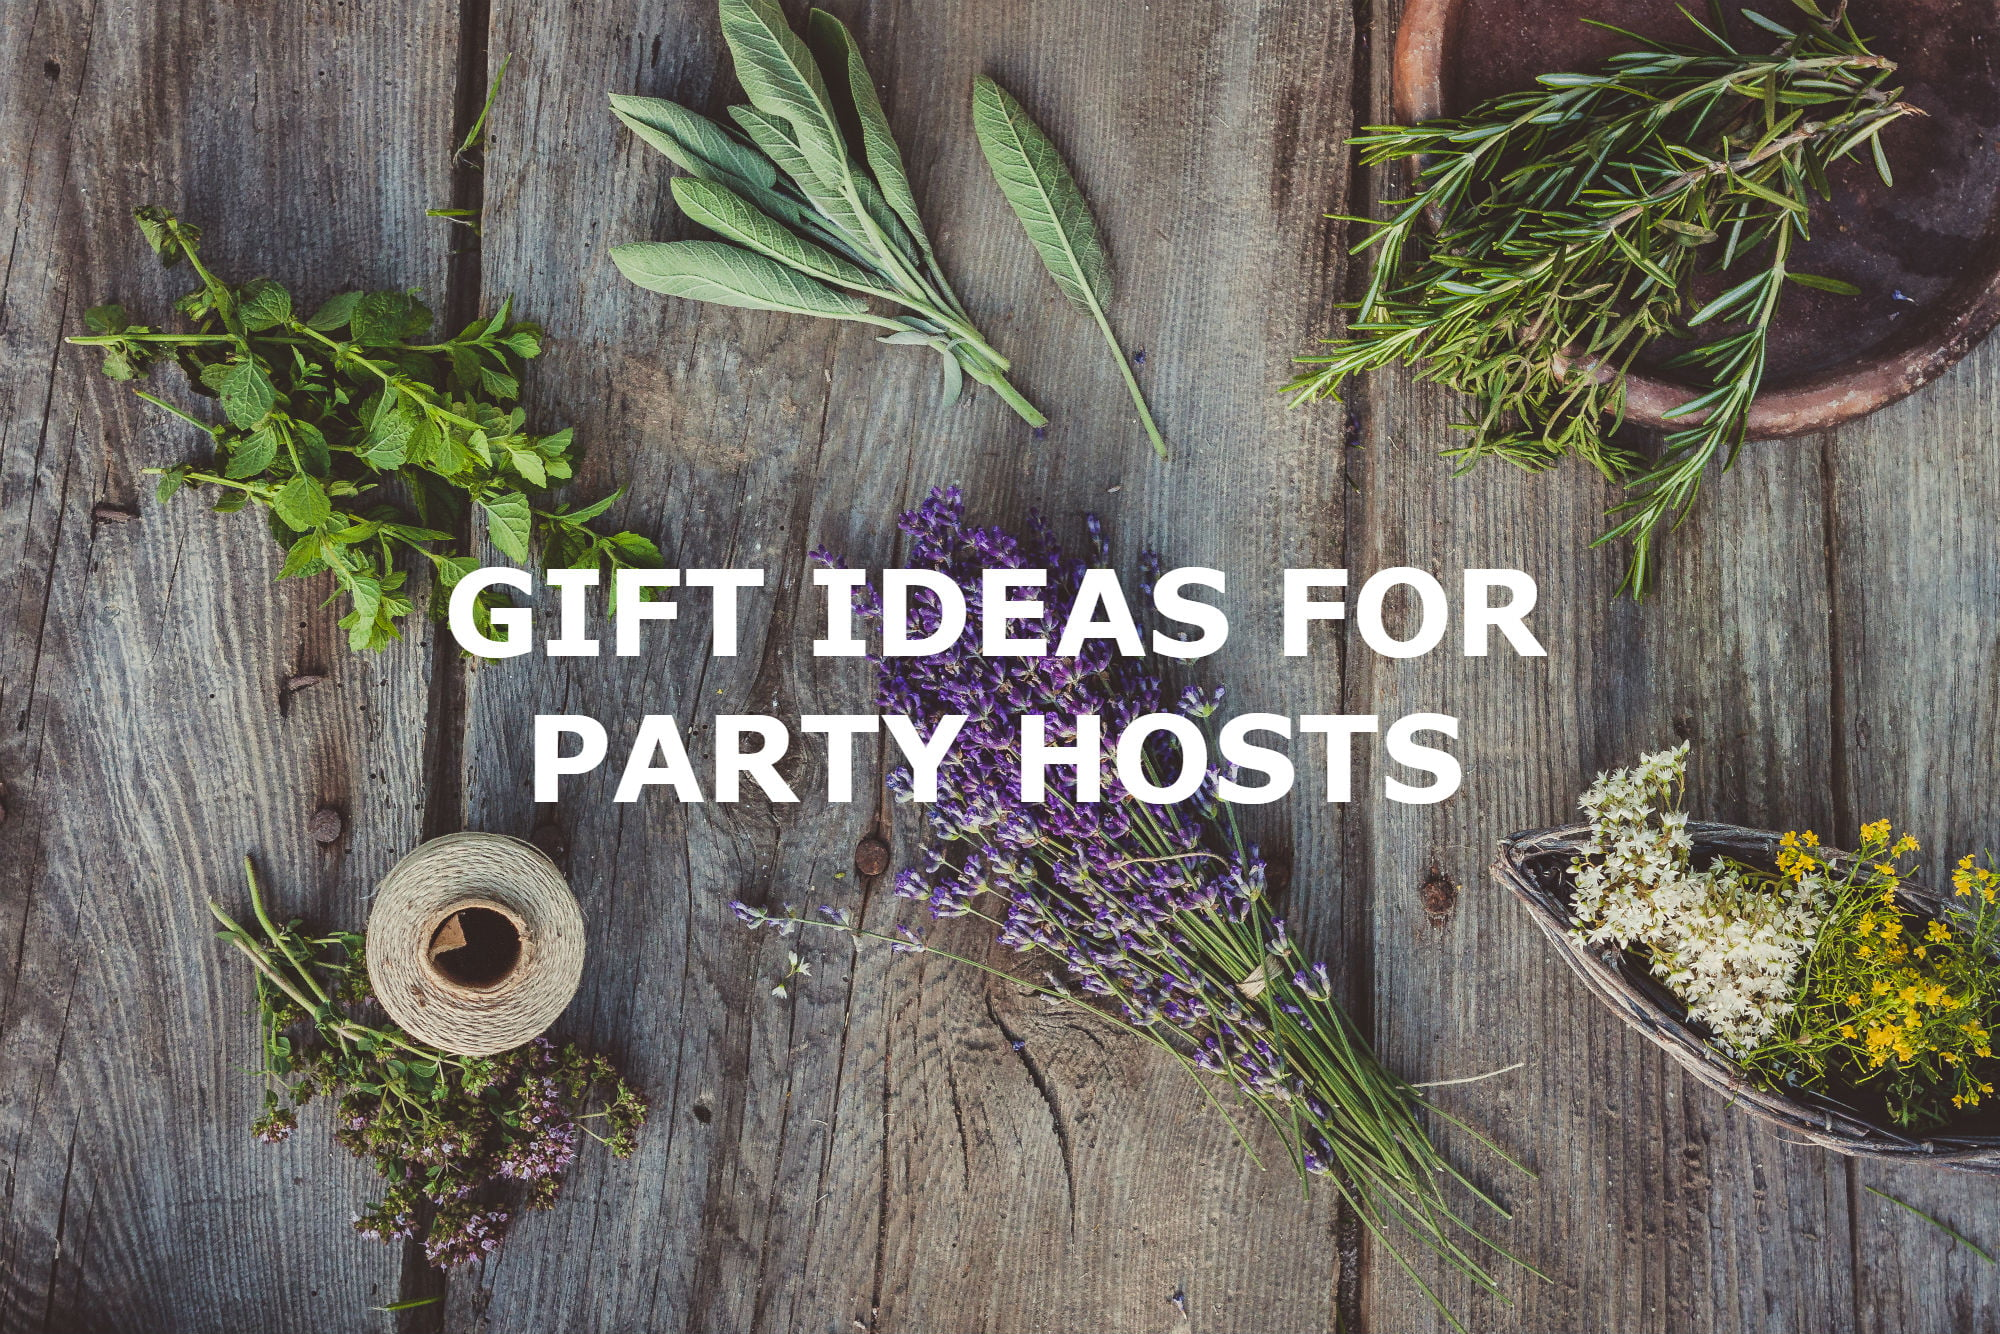 SPUD GIFT GUIDE: GIFTS FOR HOSTS